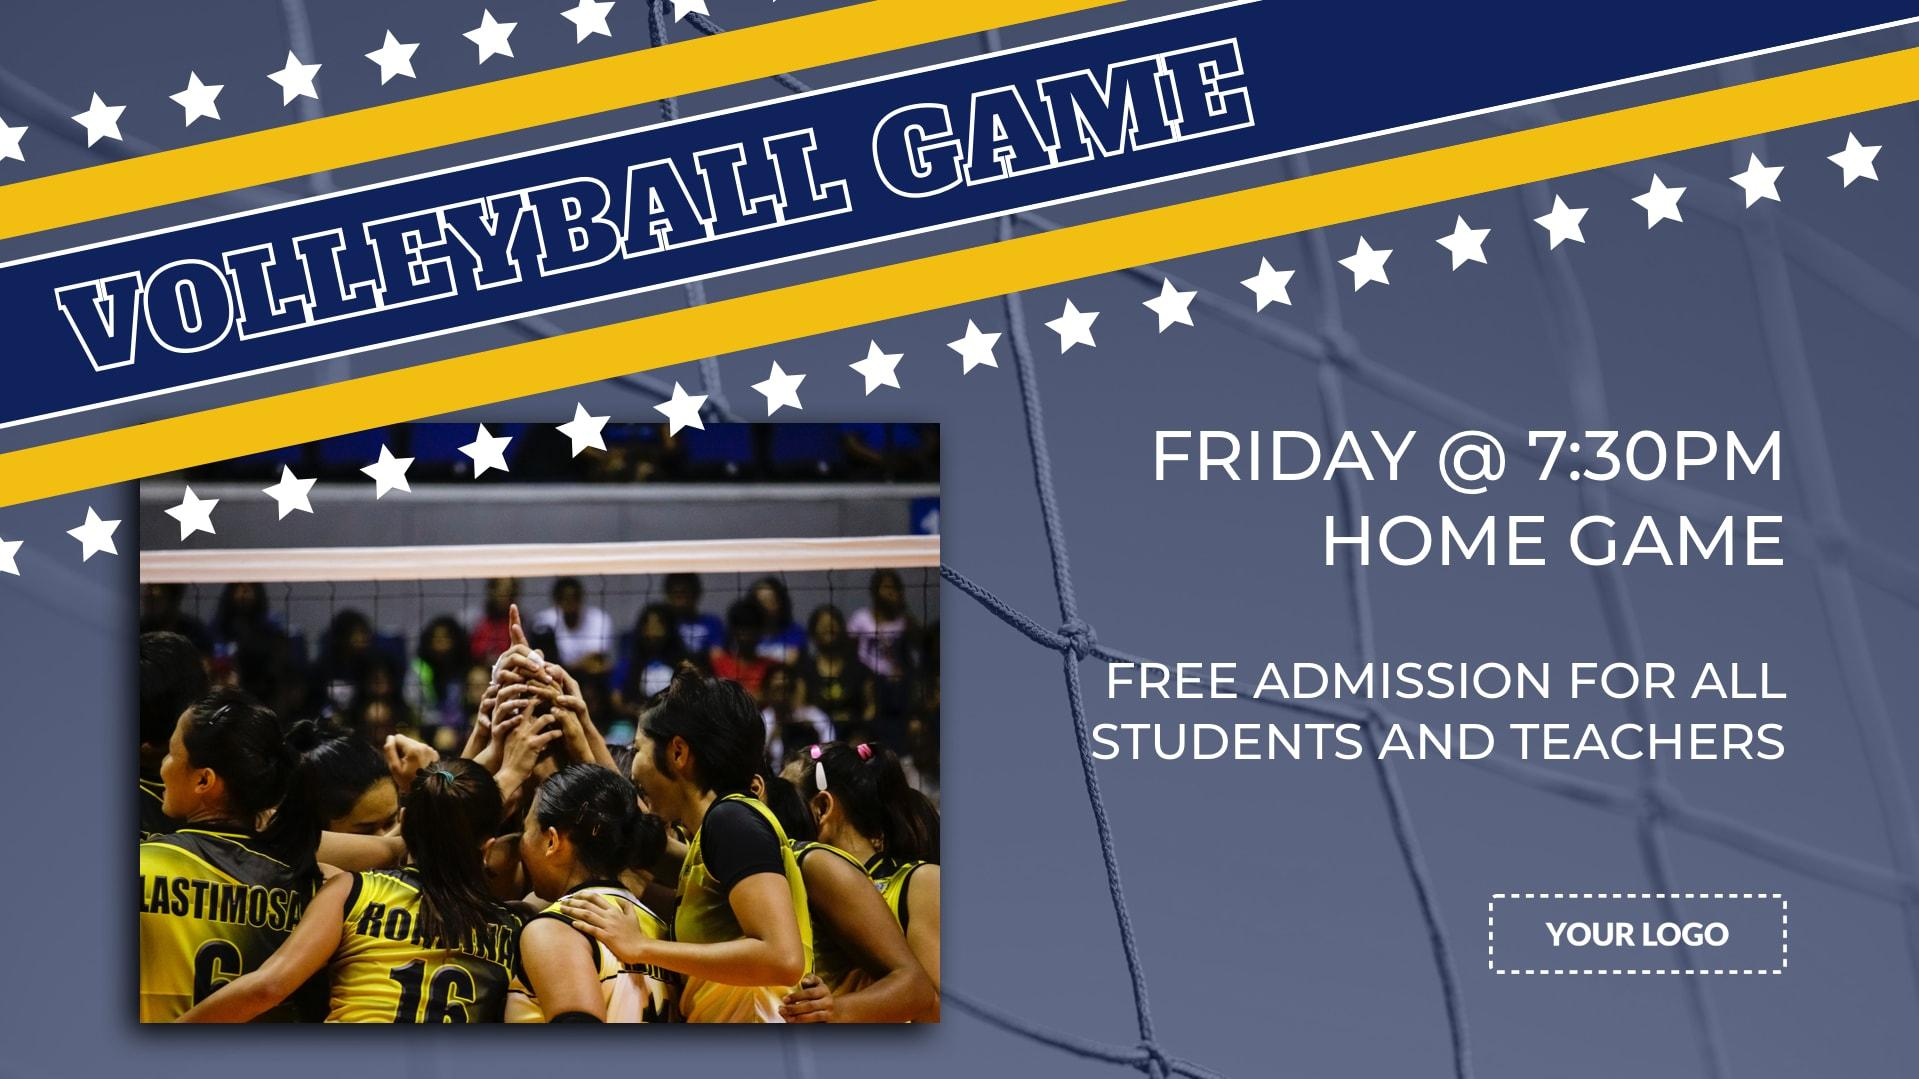 Volleyball Game Digital Signage Template